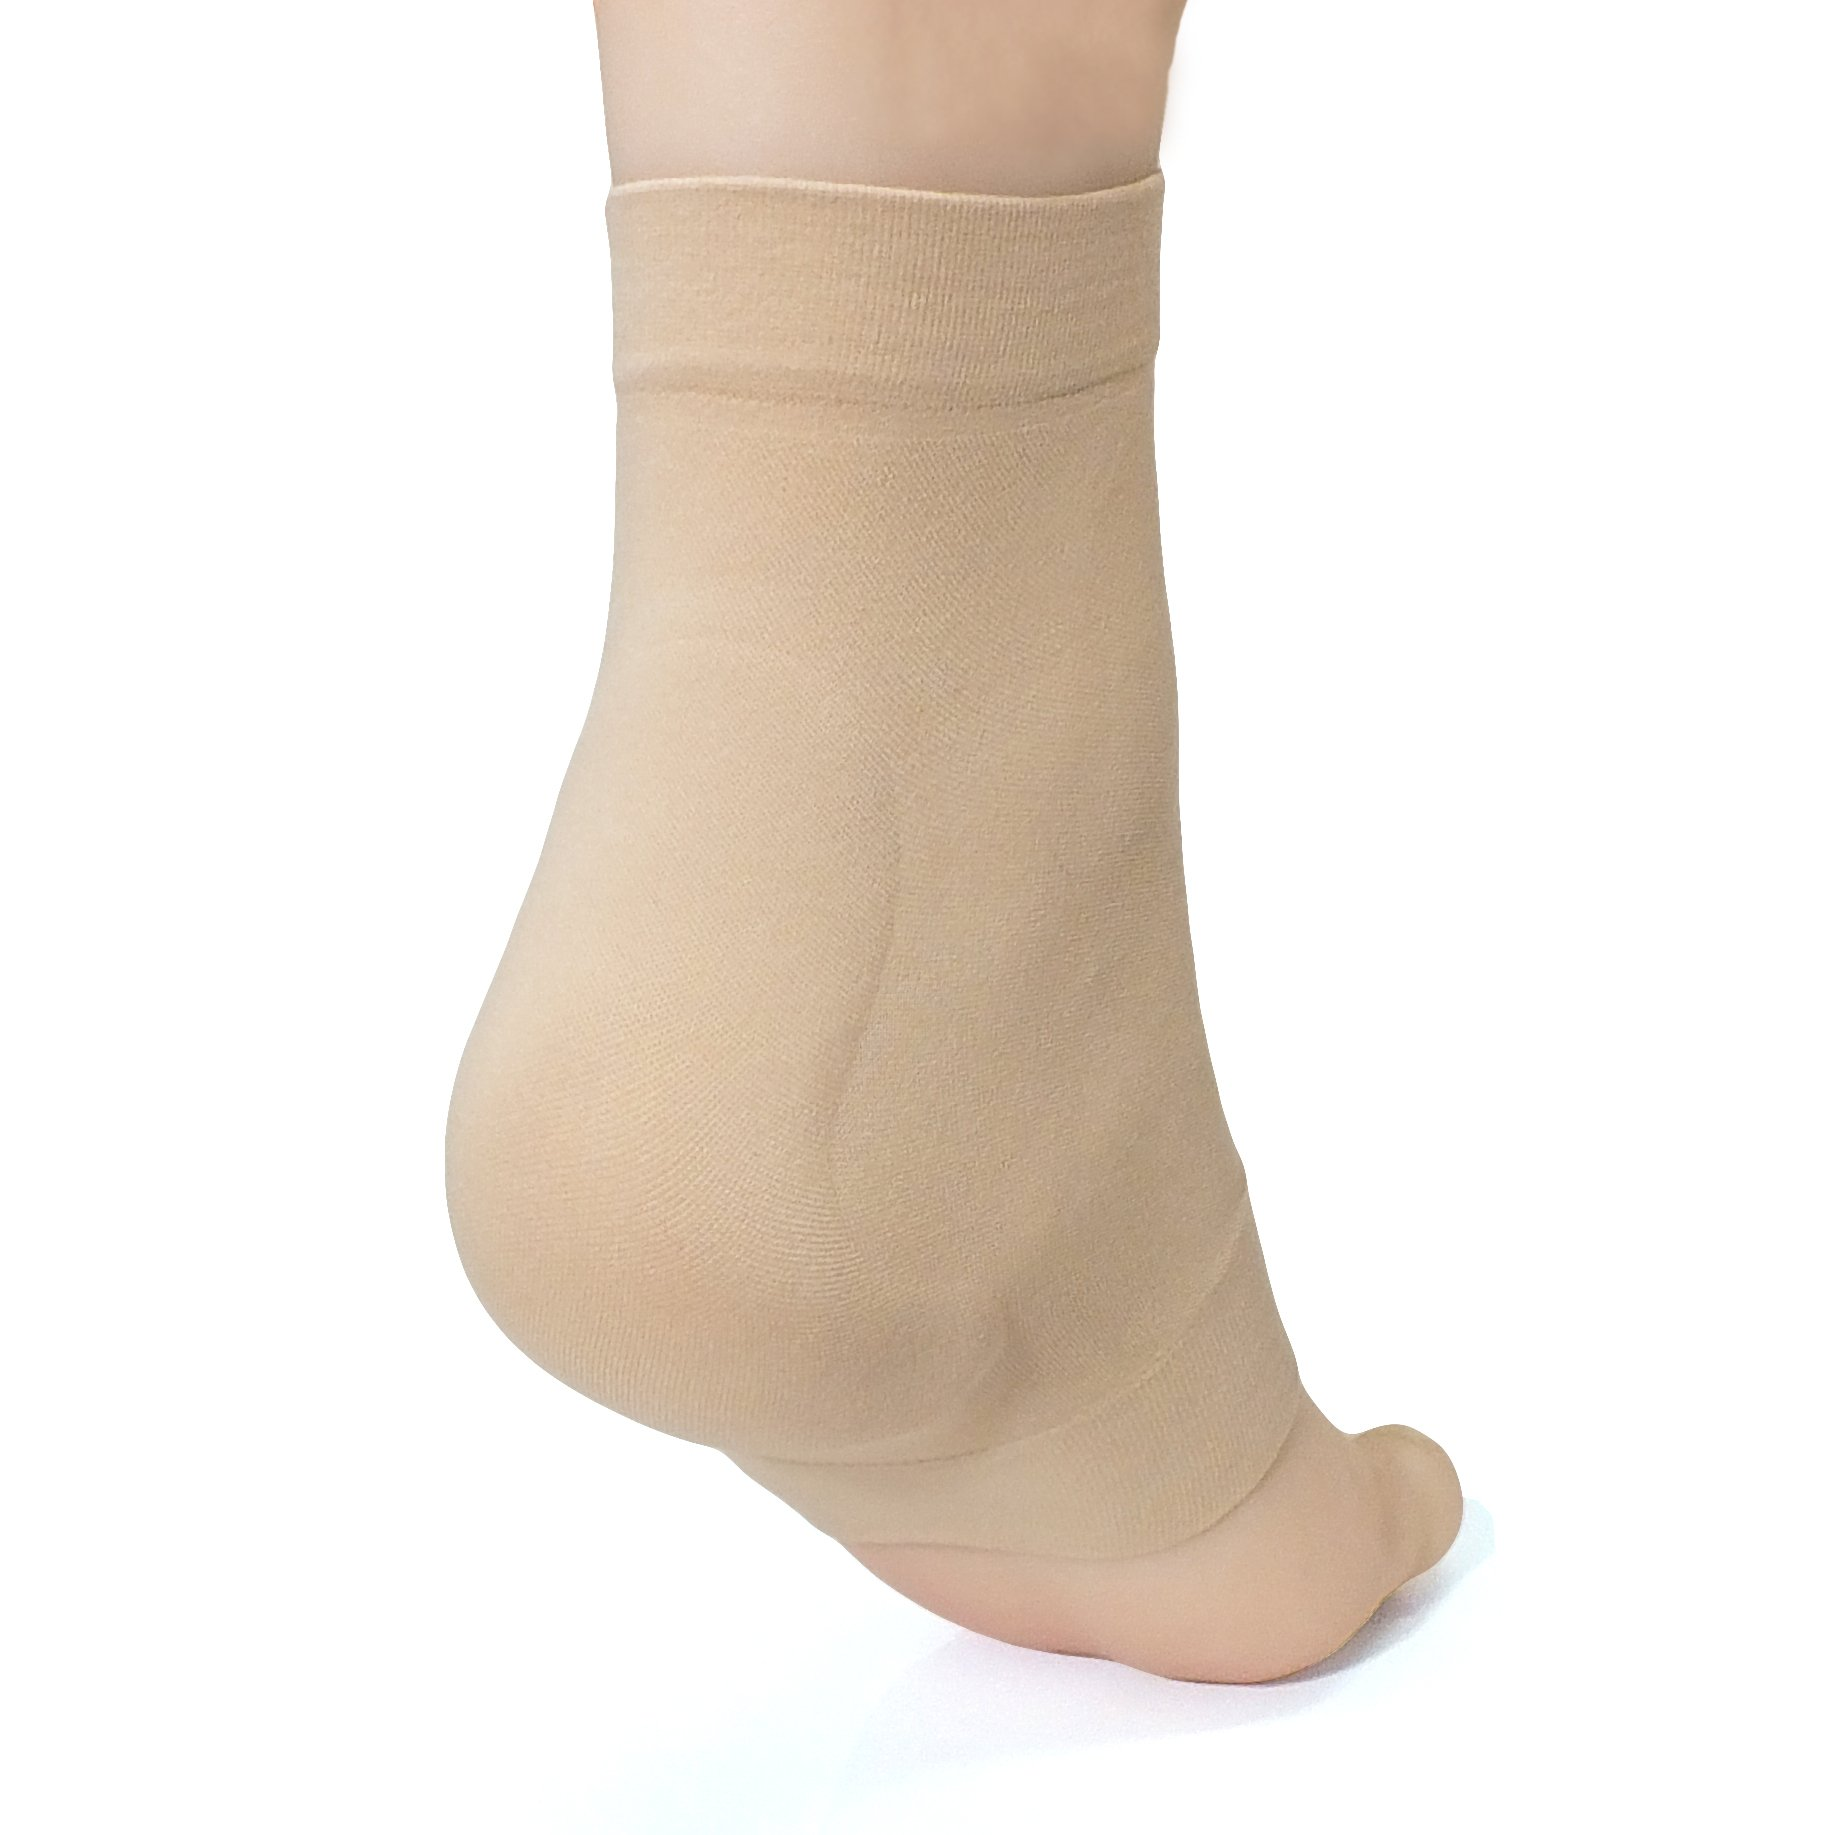 ZenToes Protector Compression Tendonitis Tenderness